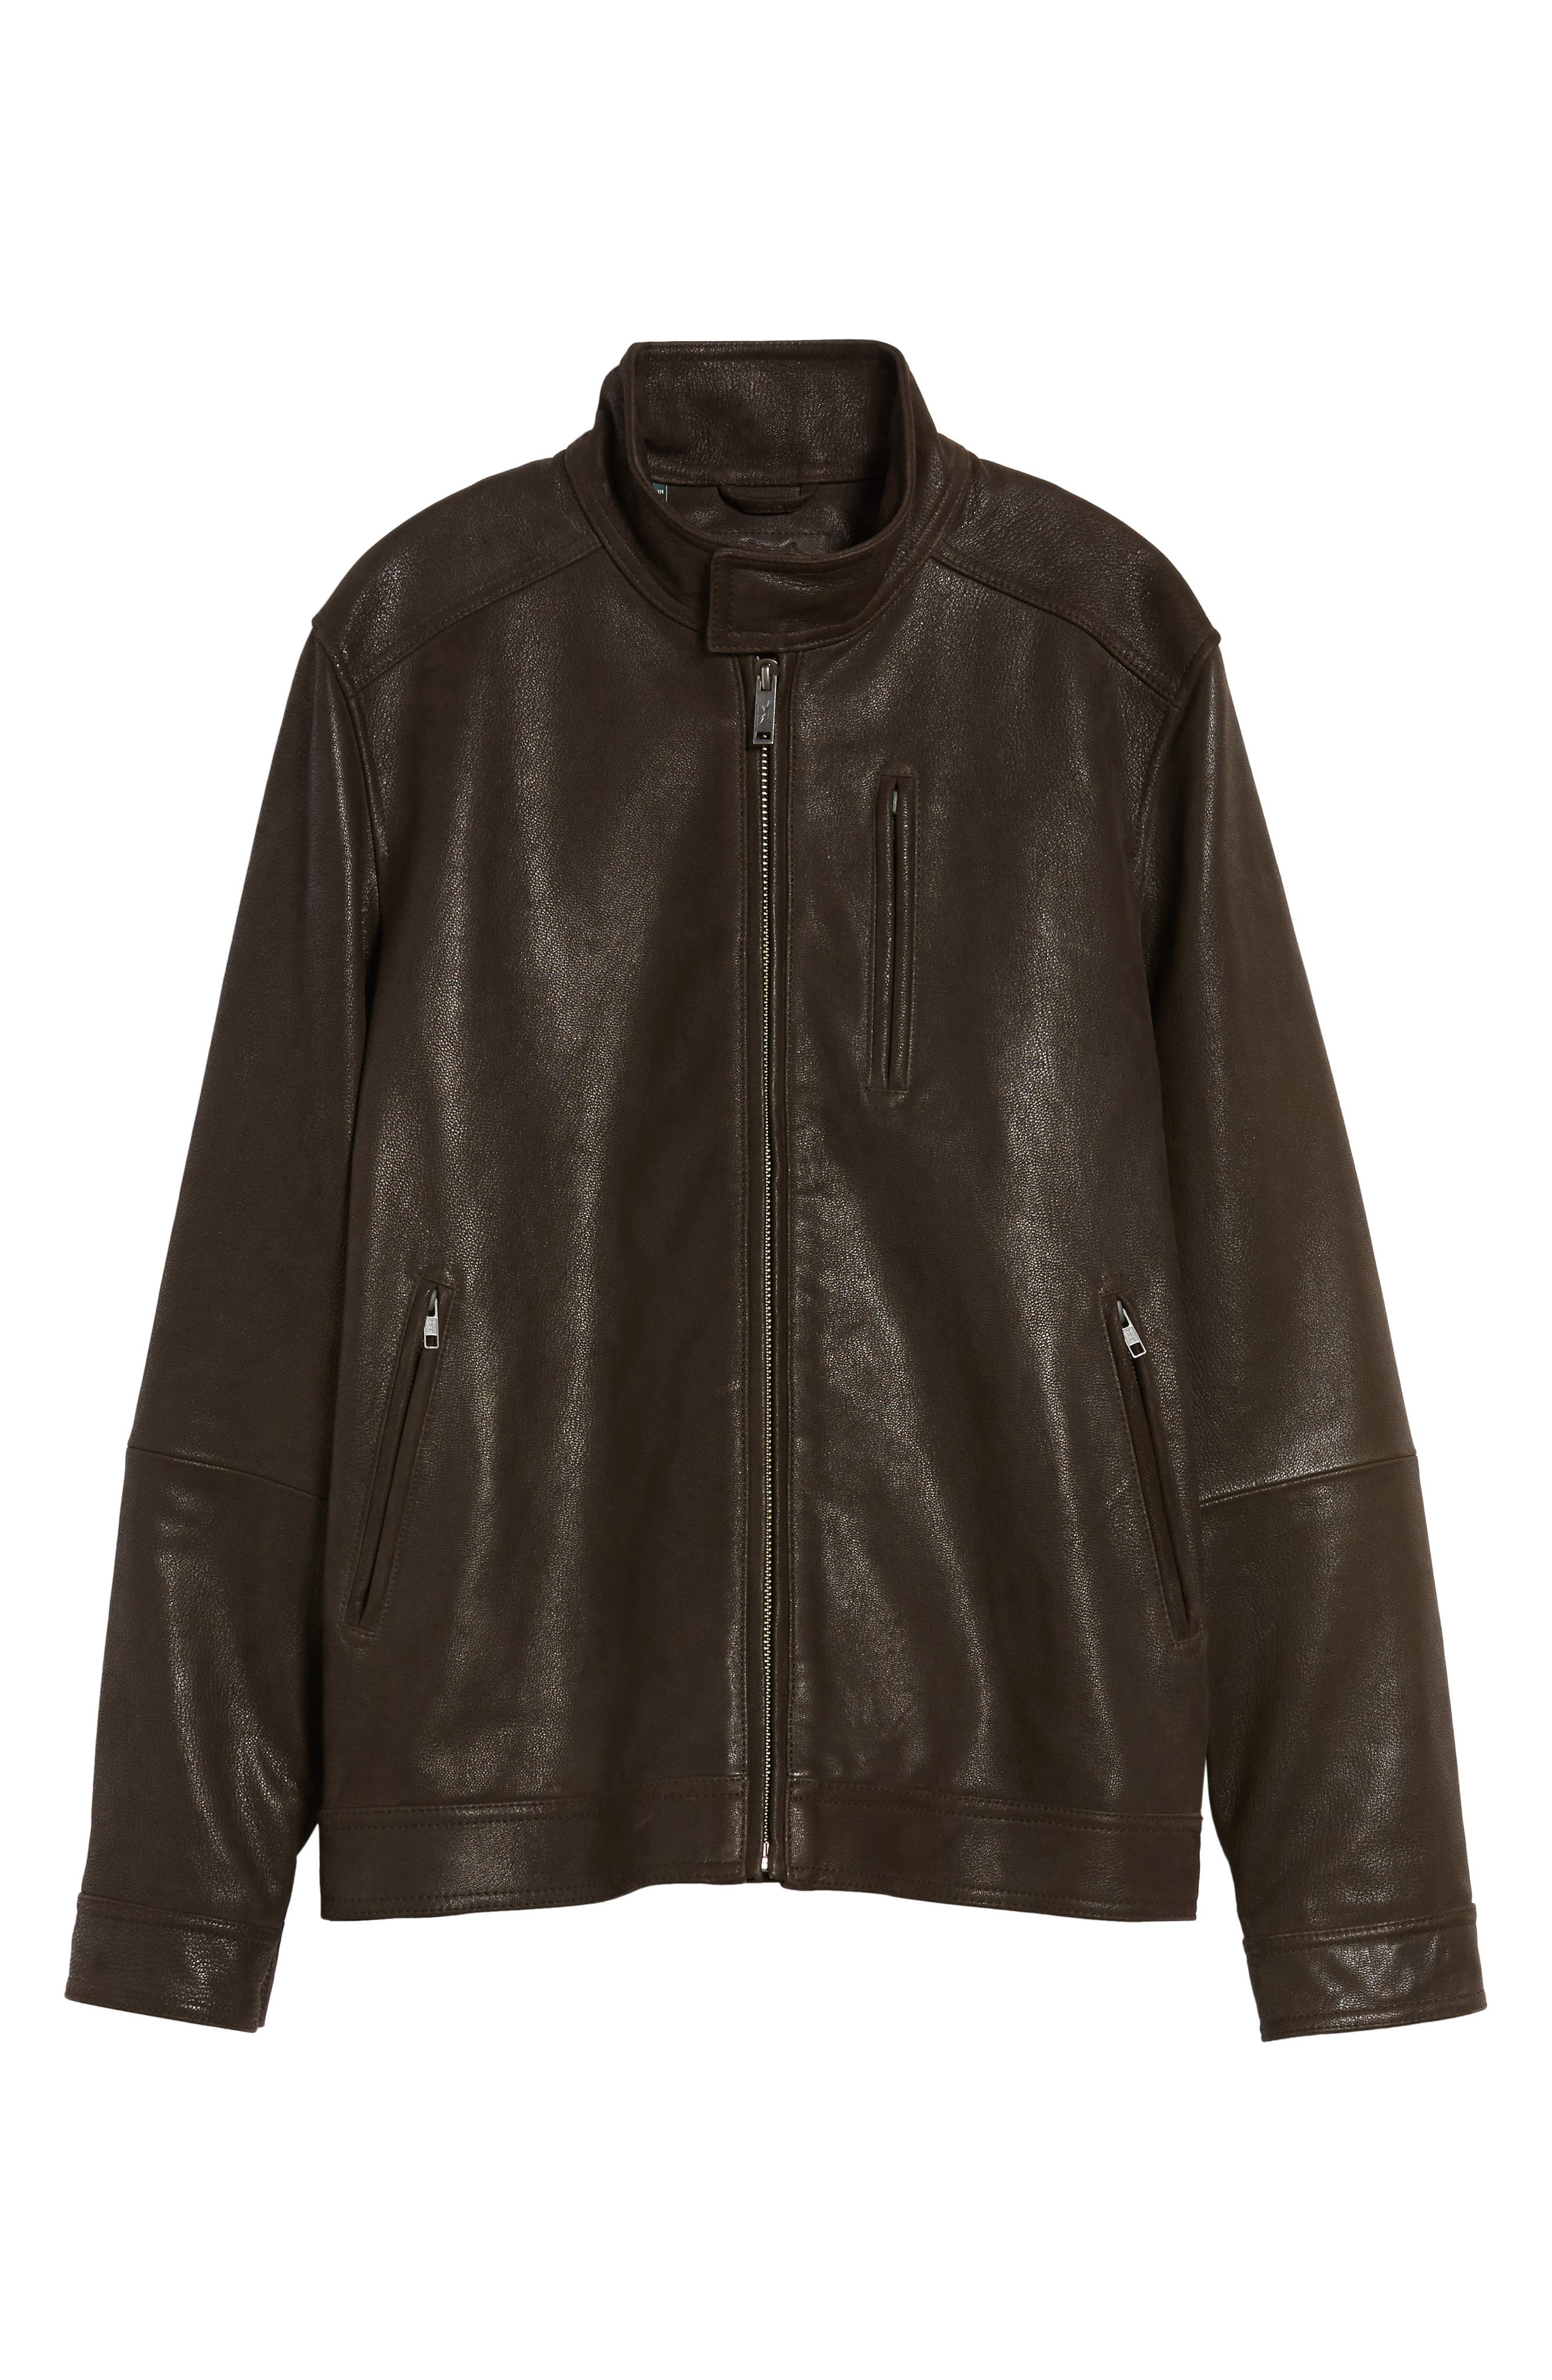 Westhaven Distressed Leather Bomber Jacket,                             Alternate thumbnail 6, color,                             Chocolate